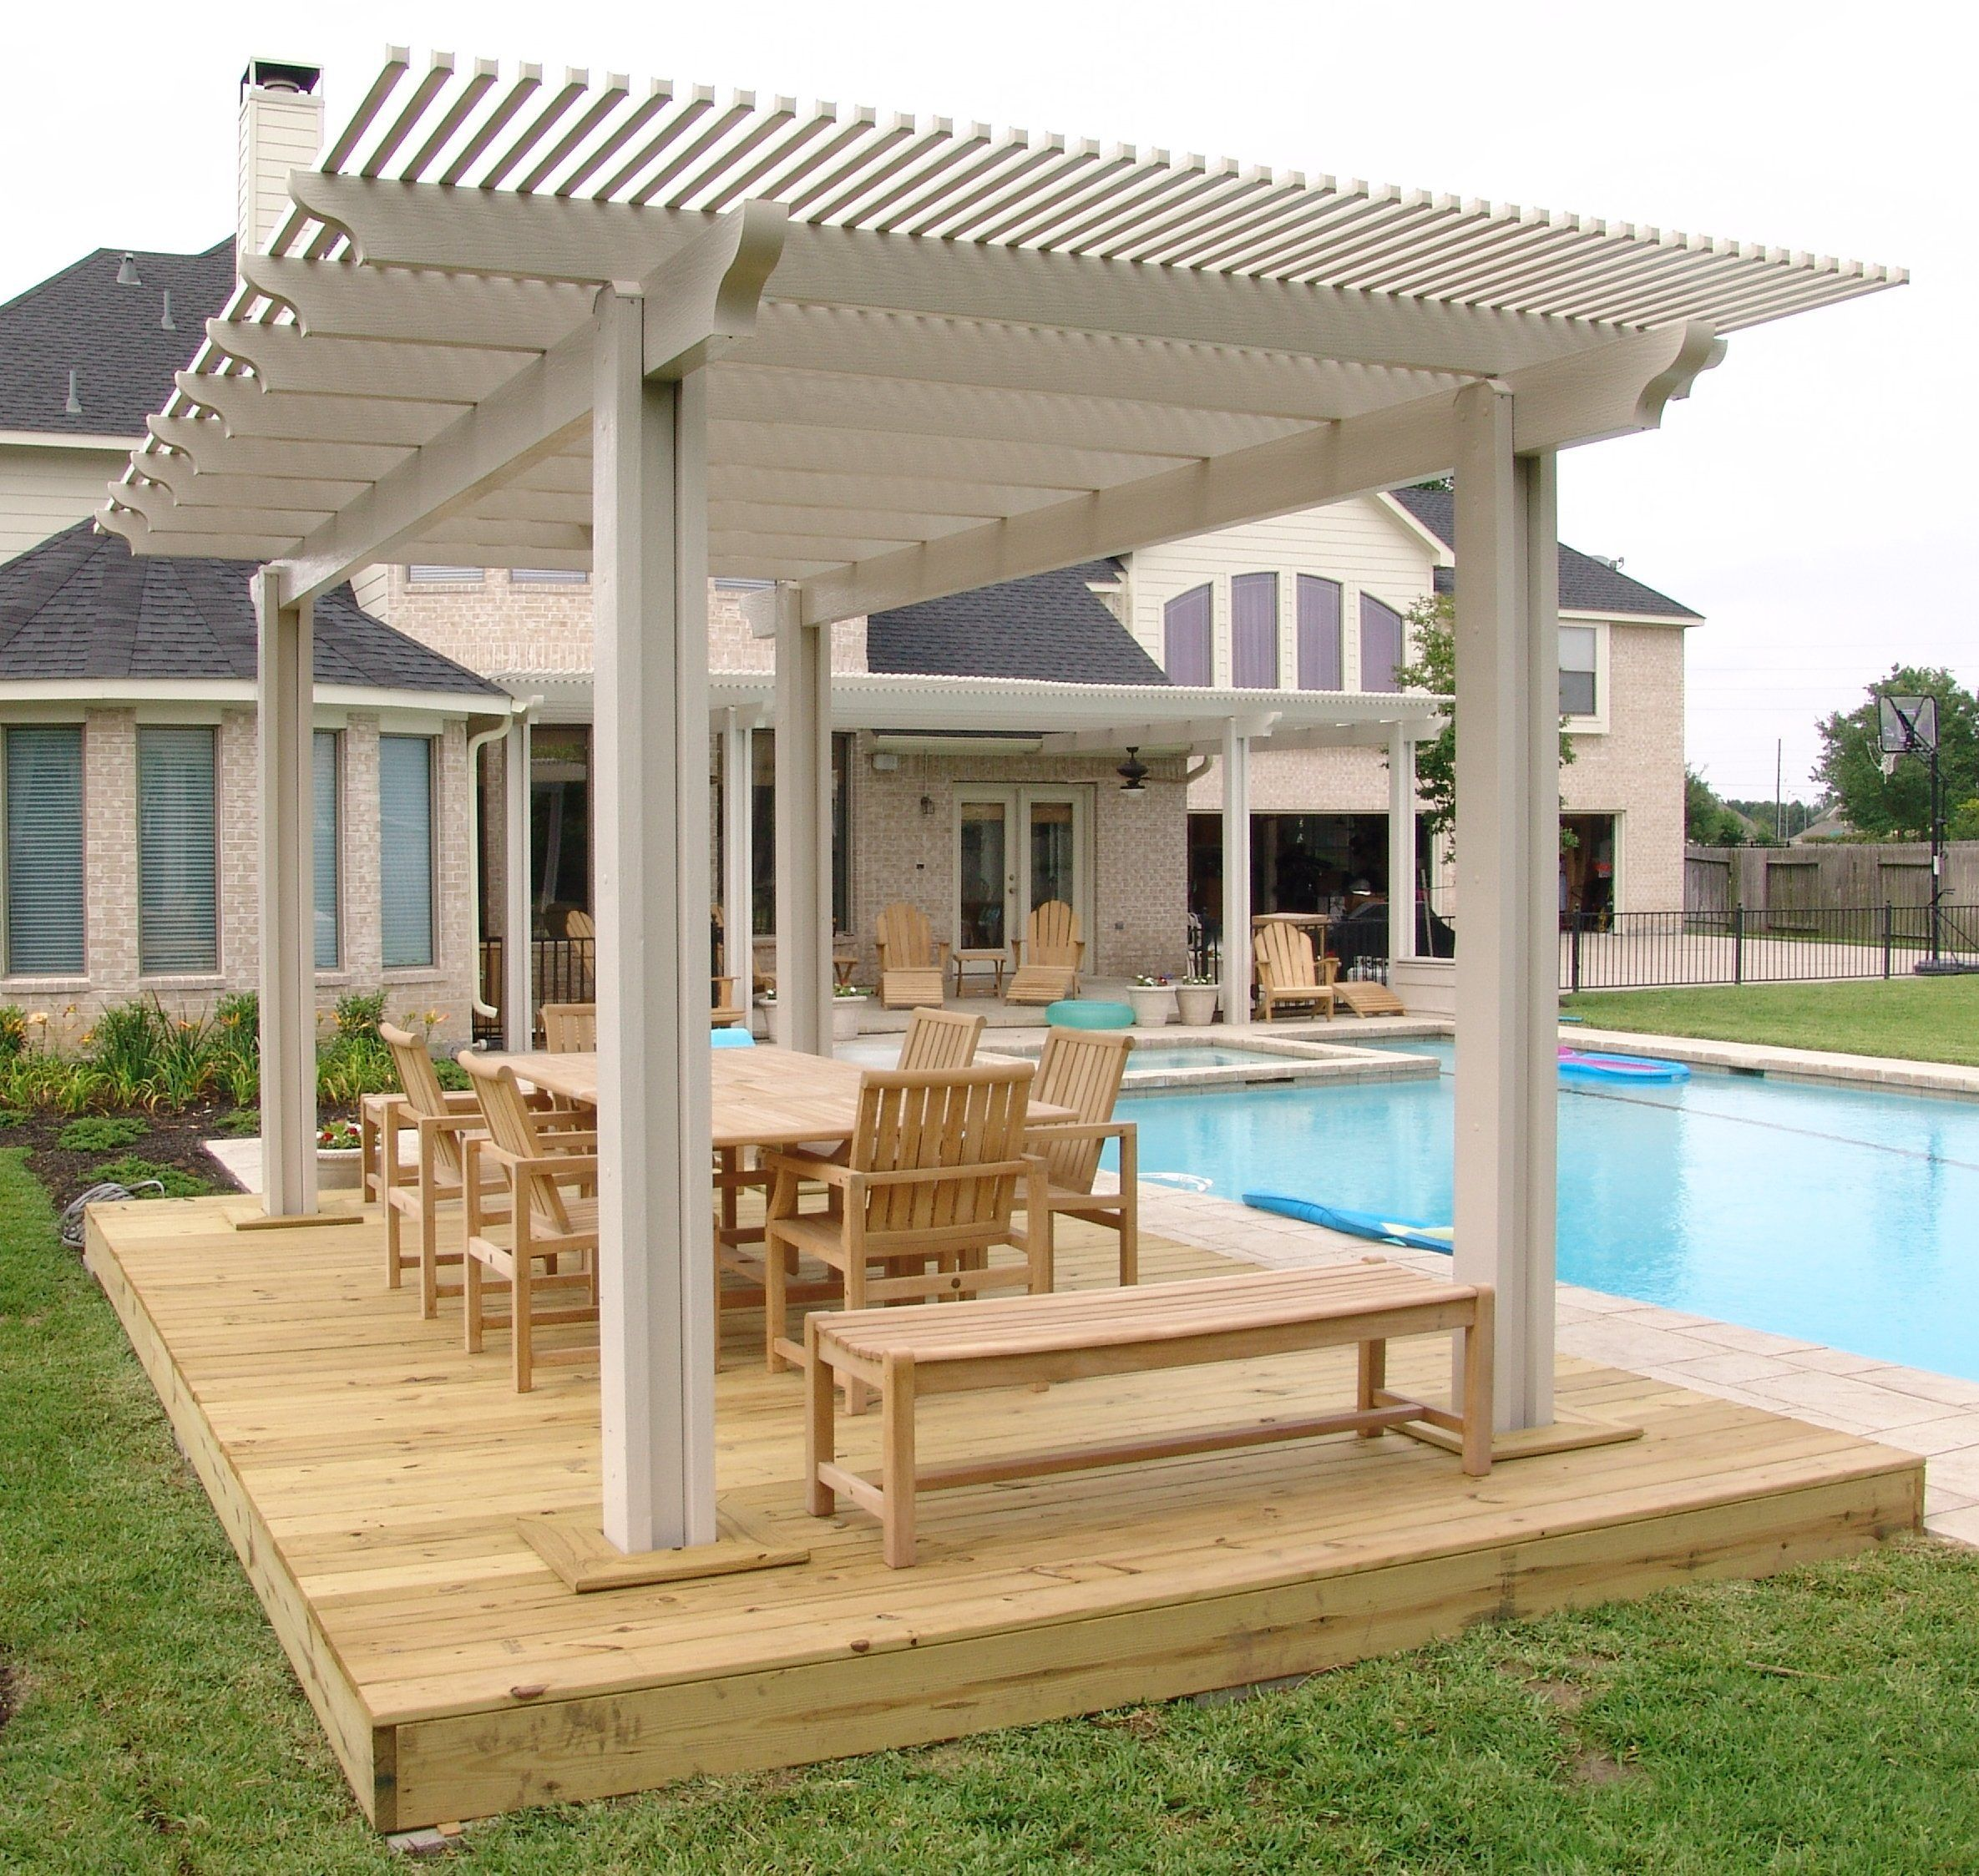 exterior modern minimalist roof deck cozy refreshing portable gazebo design natural solid wood deck white painted - Free Pergola Designs For Patios